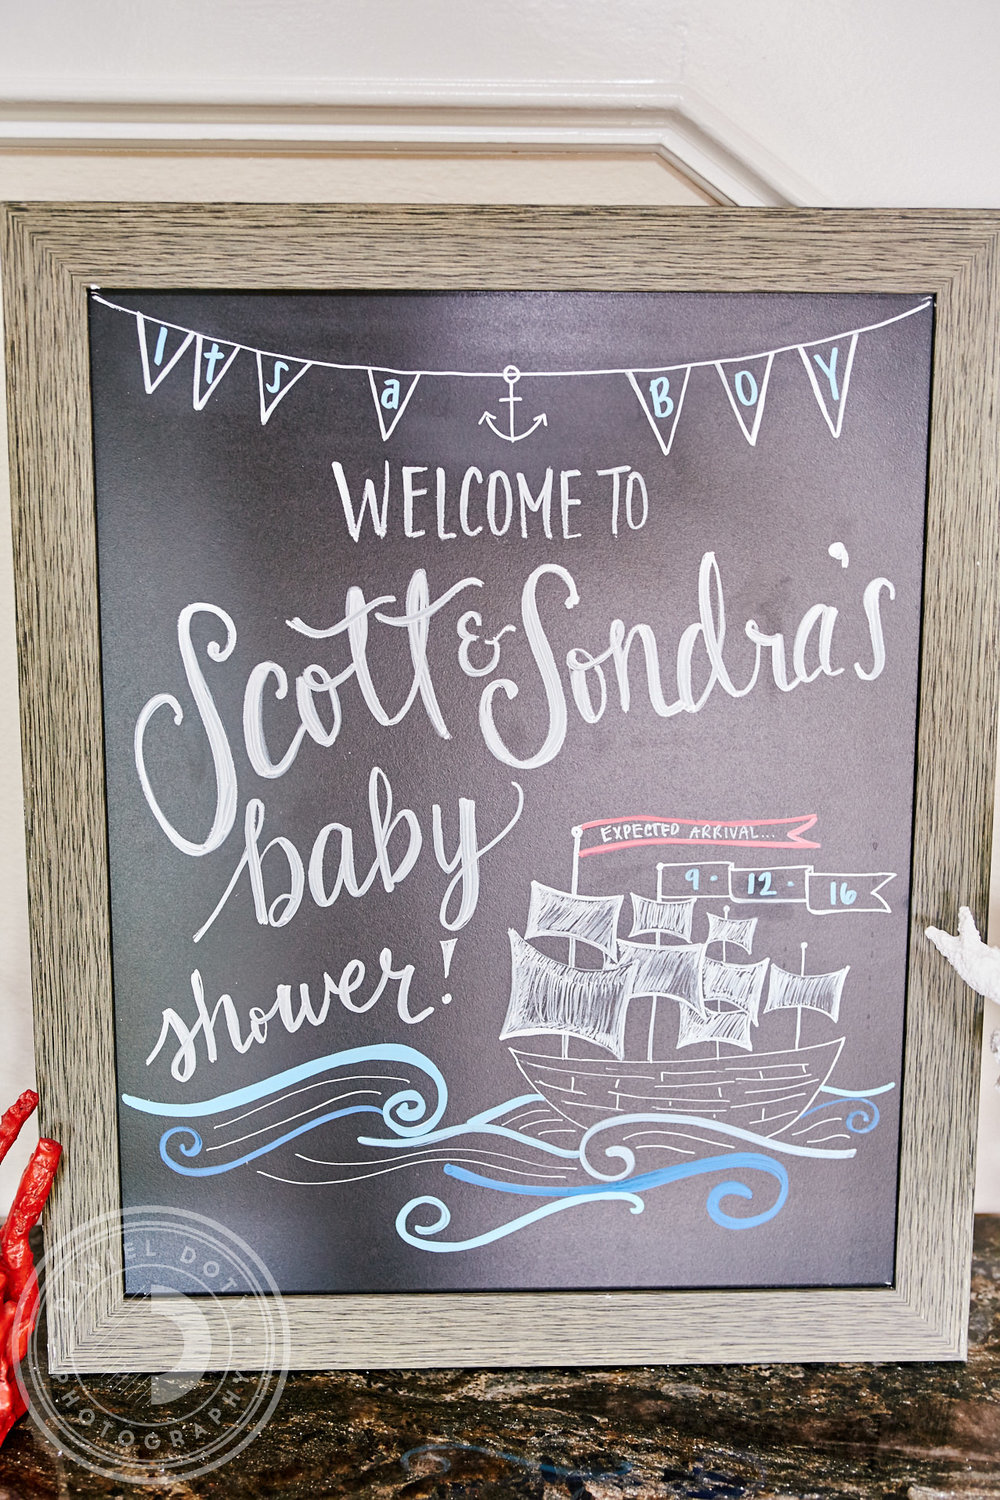 Sondra and Scott Baby Shower